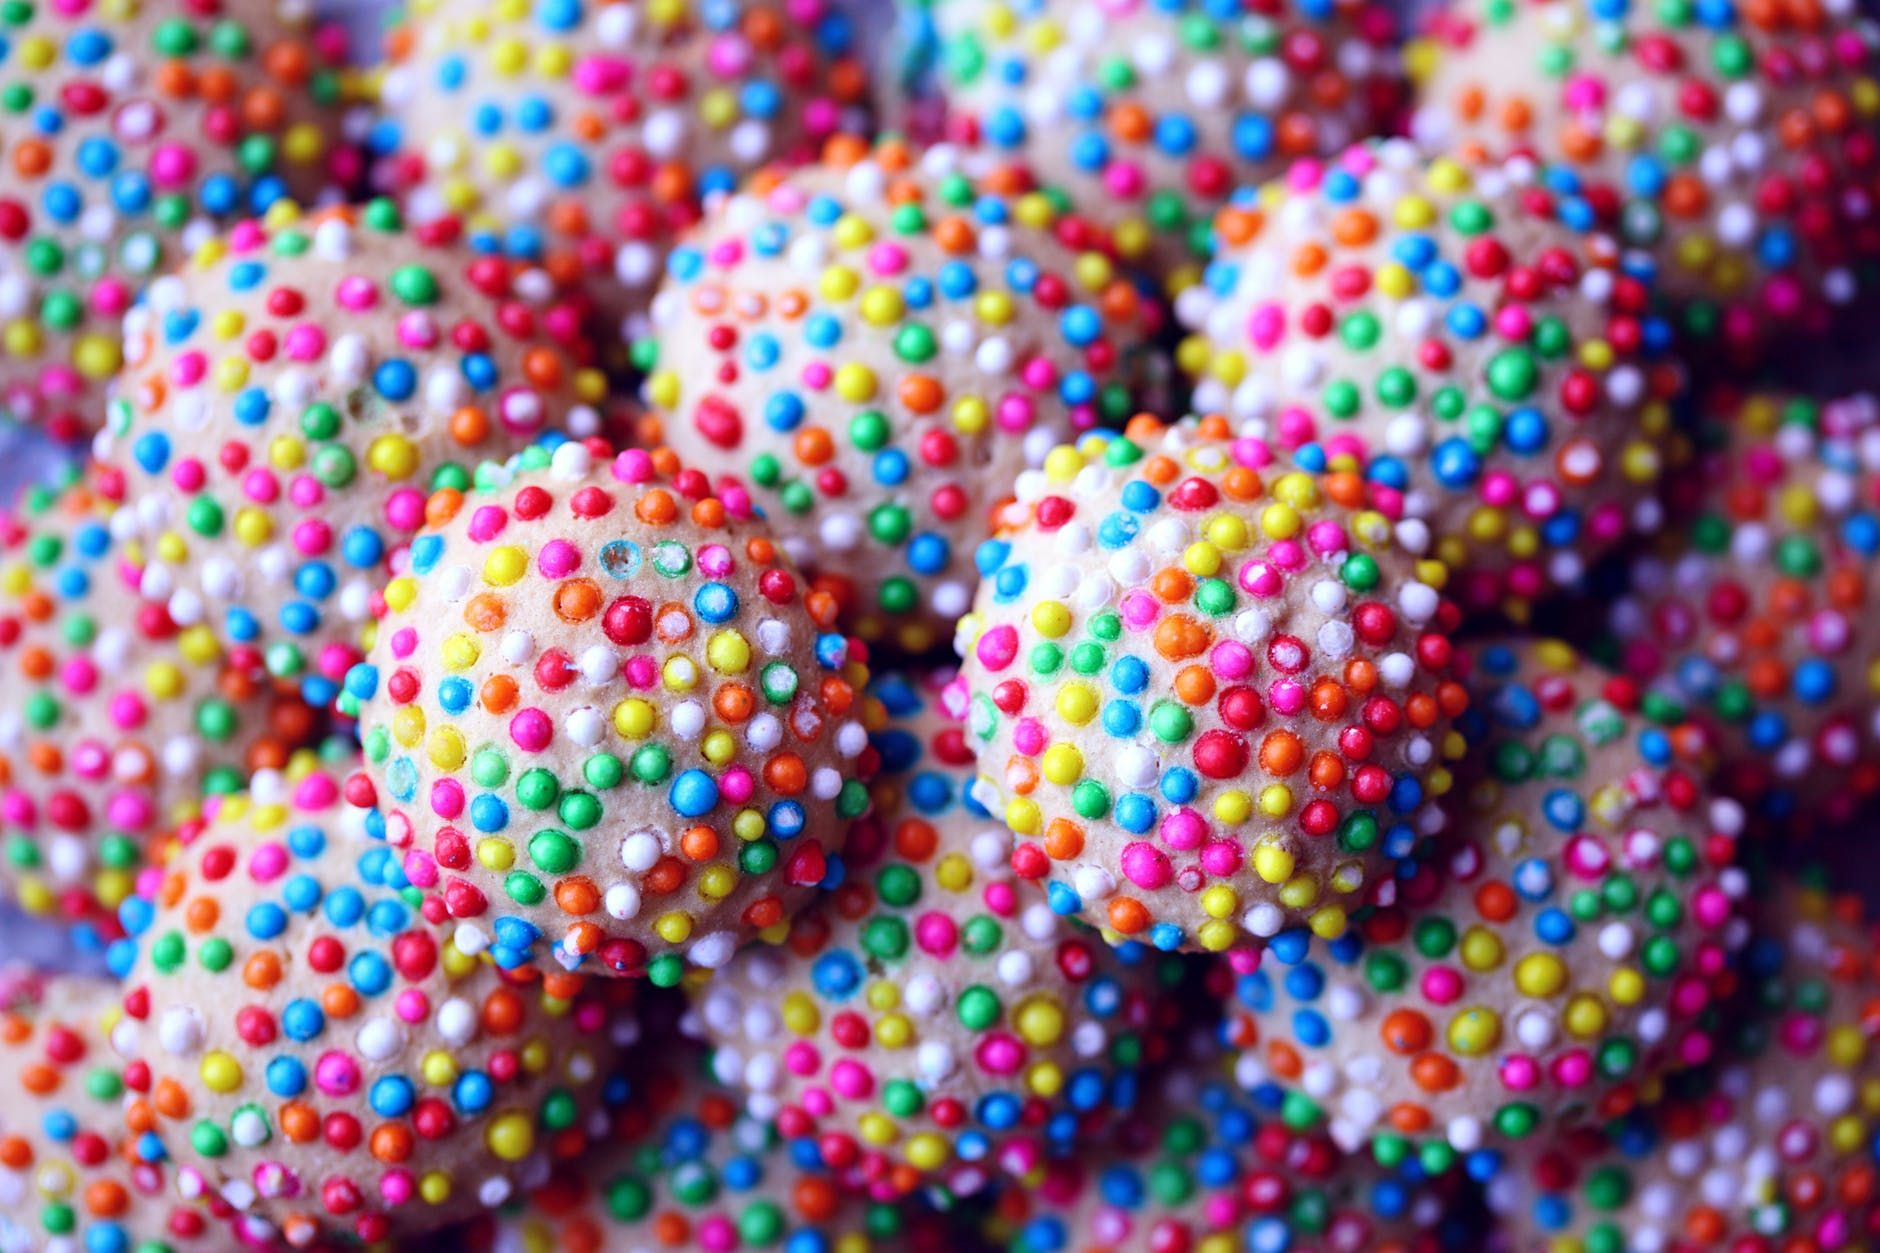 A close up of sprinkle sugar candies